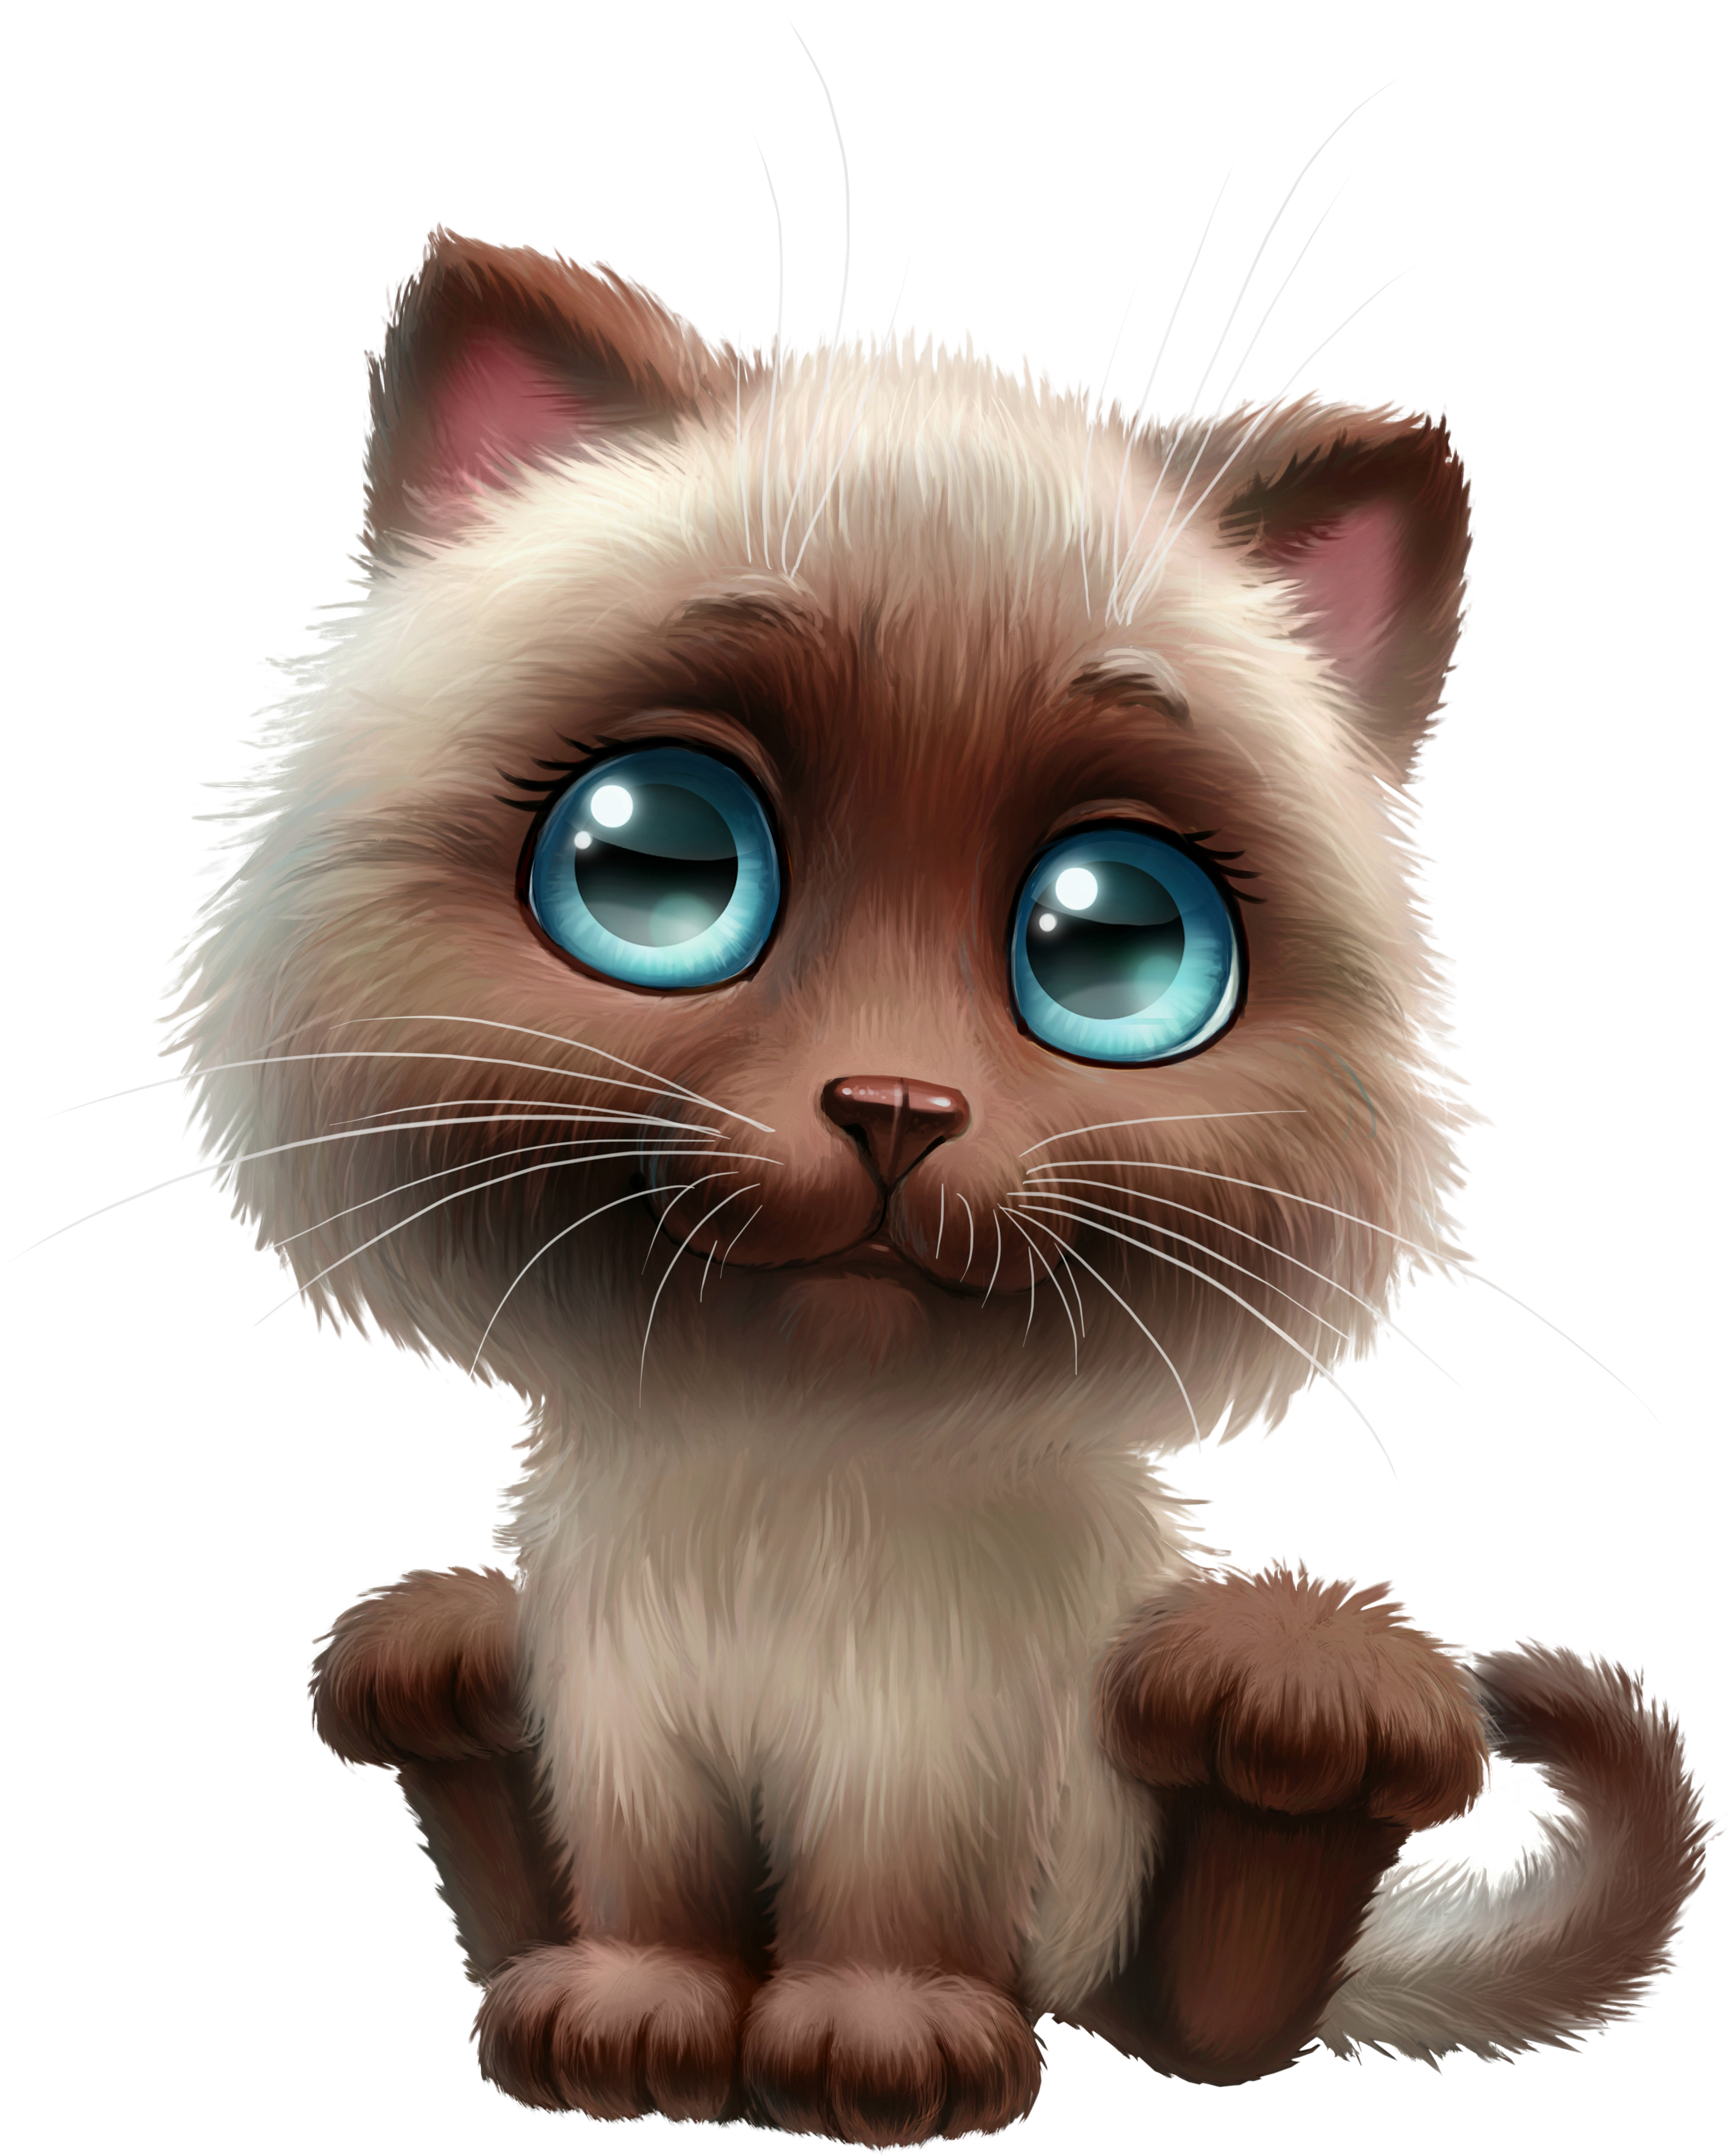 fea c orig. Sad animals png picture royalty free download